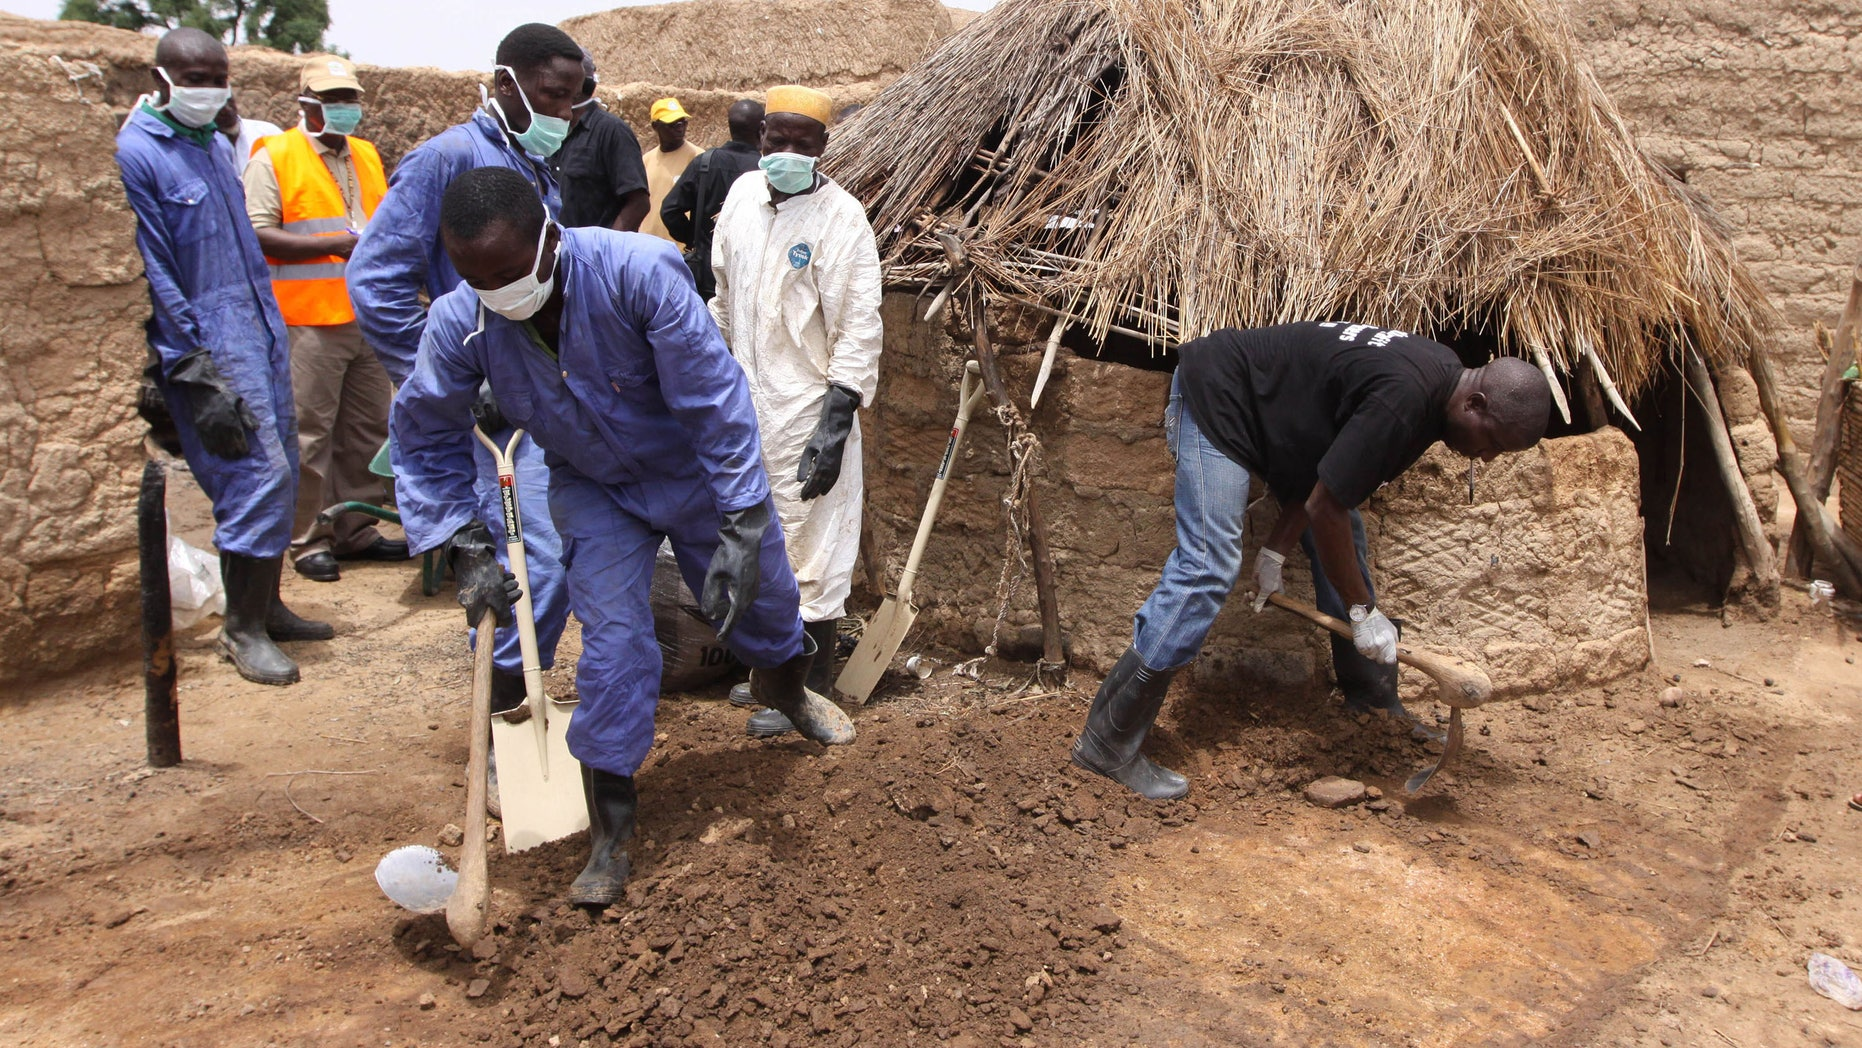 Local health workers removing earth contaminated by lead from a family compound in the village of Dareta in Gusau, Nigeria.